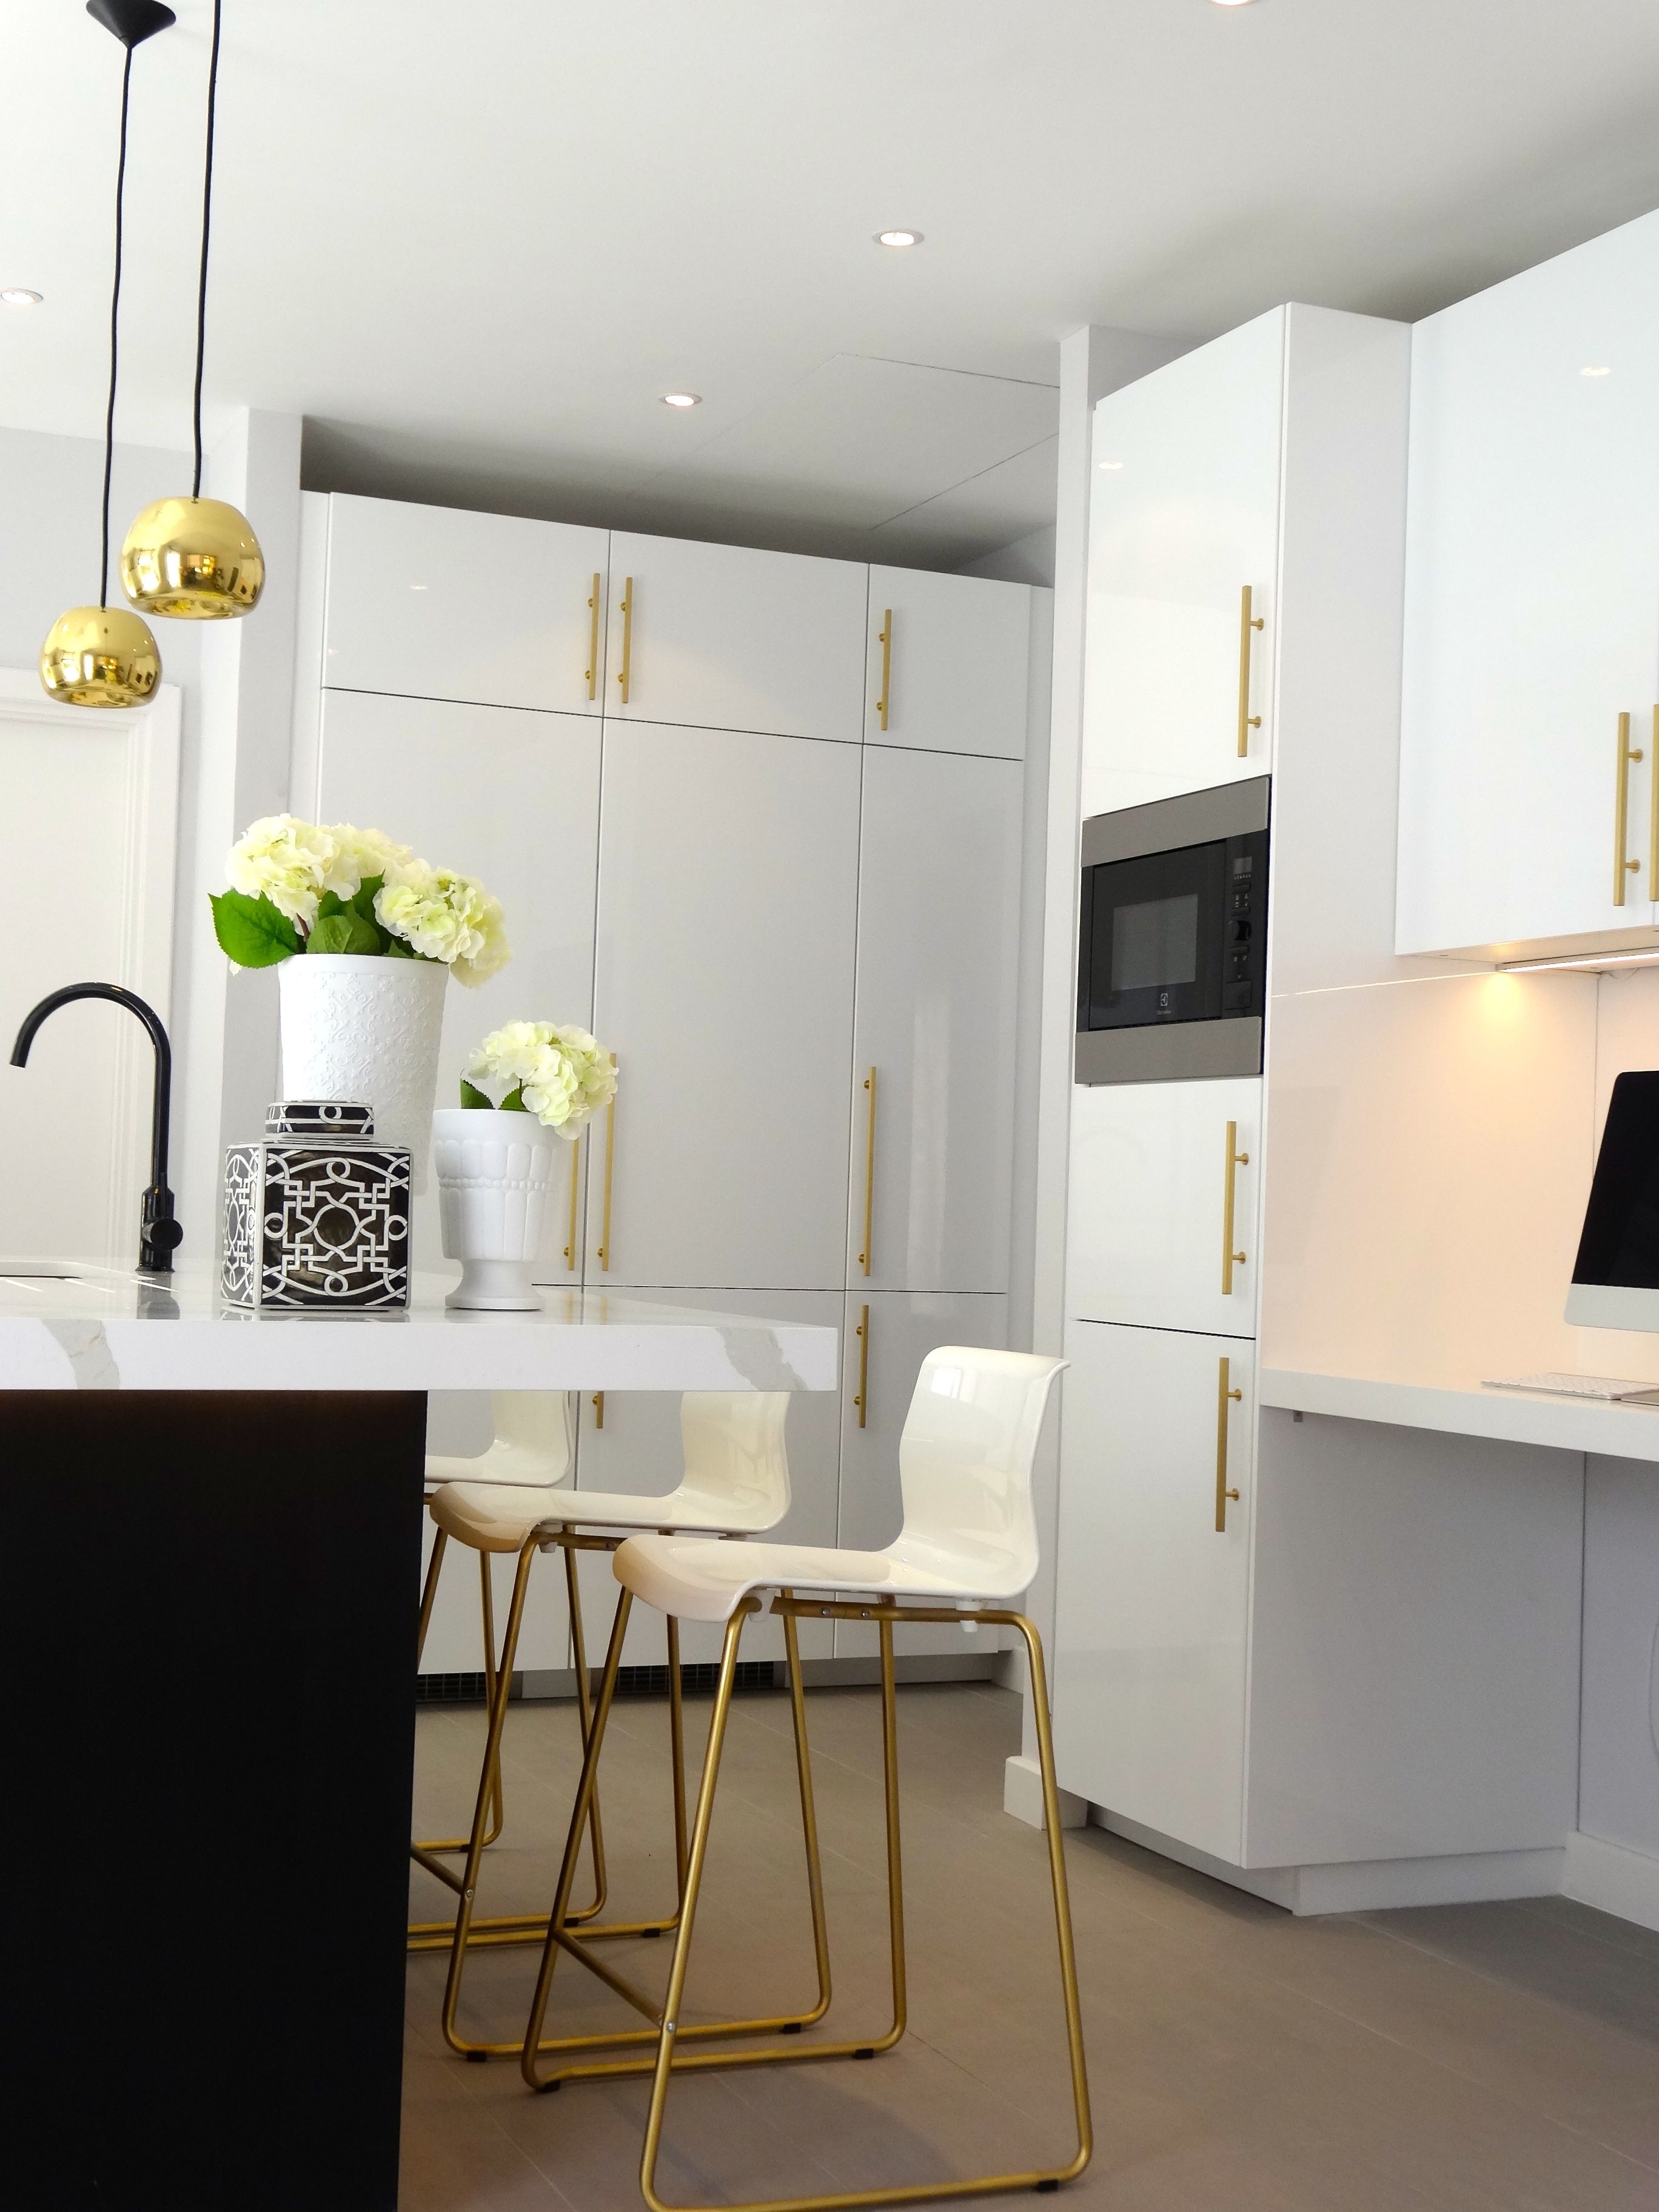 black and white kitchen accessories hanging lights with brass gold high gloss cabinets pendant island greek key blinds cream bar